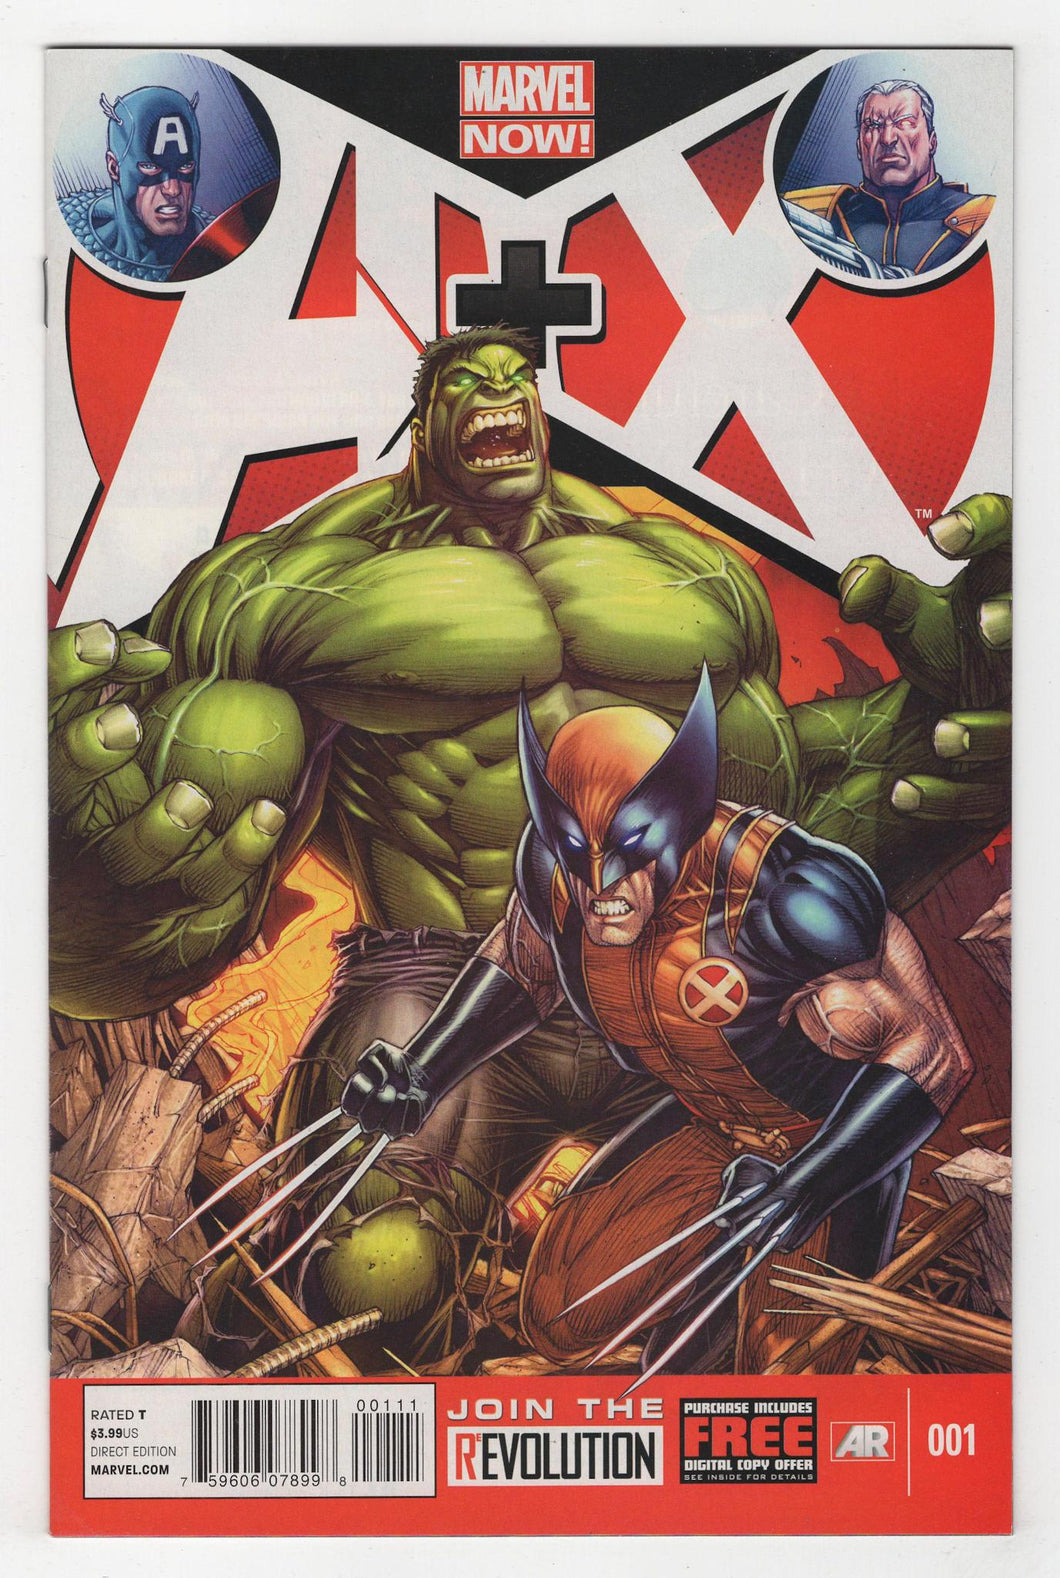 A Plus X #1 Cover Front